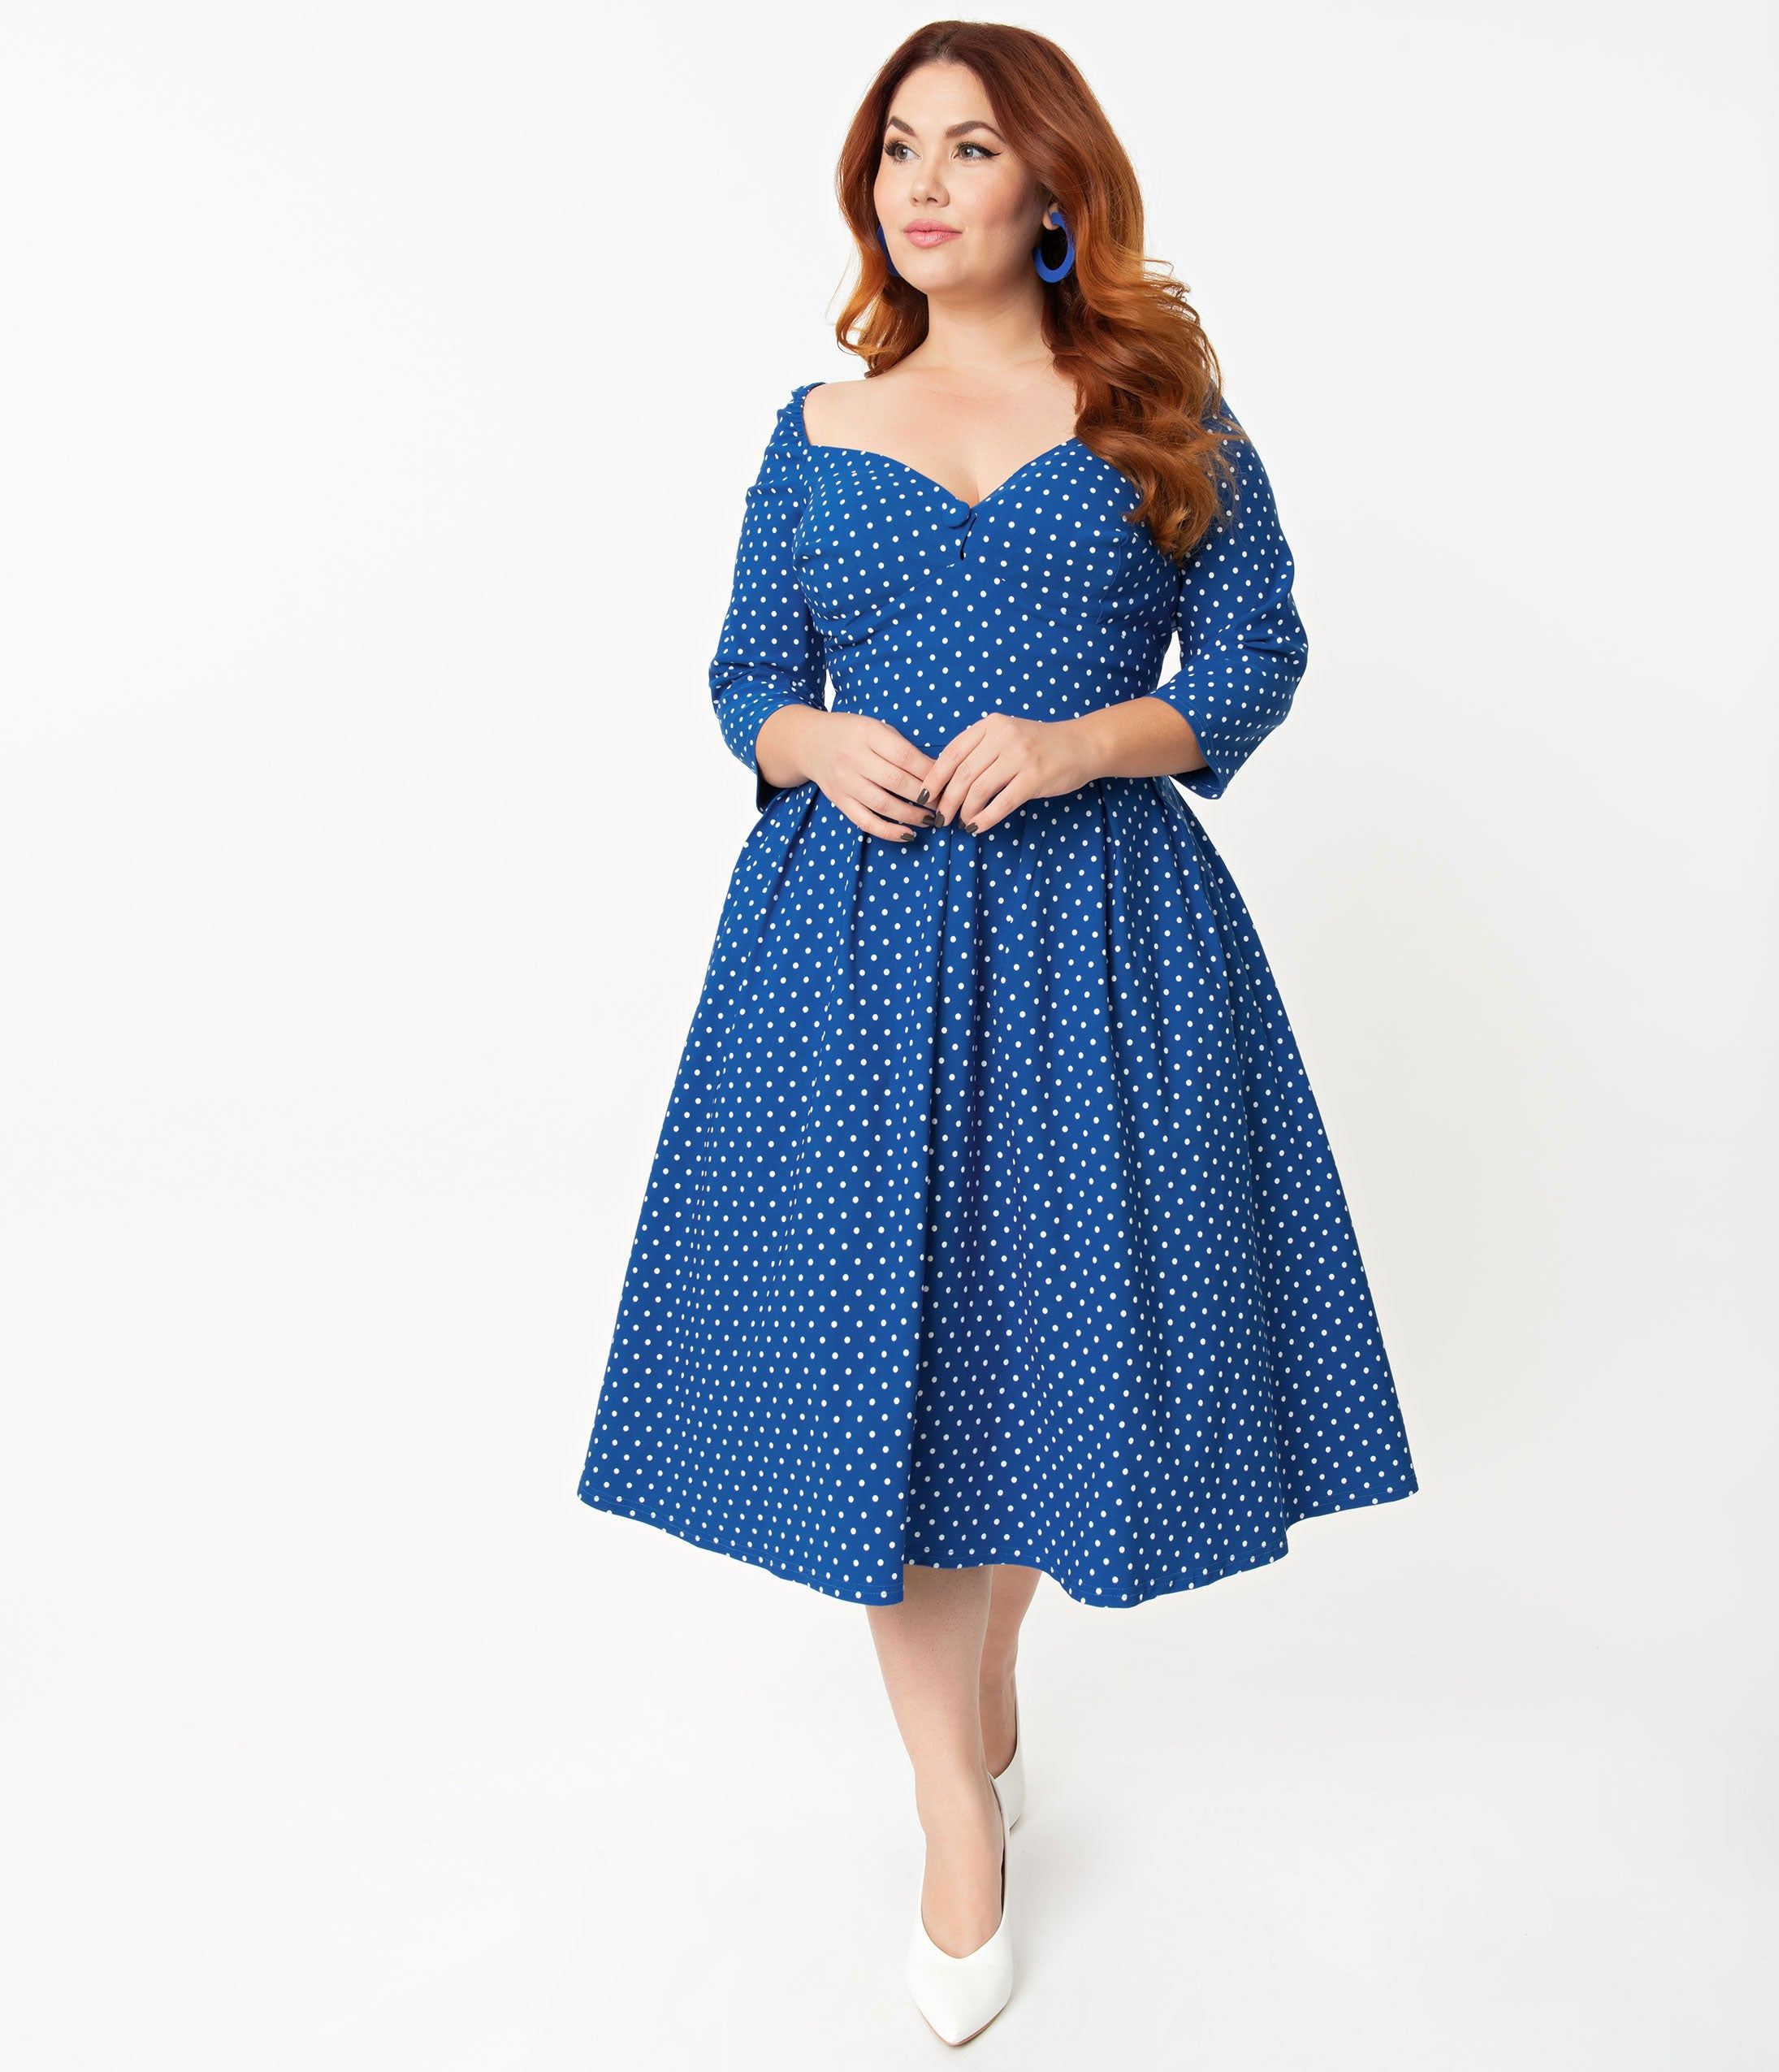 500 Vintage Style Dresses for Sale | Vintage Inspired Dresses Unique Vintage  Pantone Plus Size Classic Blue  White Pin Dot Lamar Swing Dress $110.00 AT vintagedancer.com